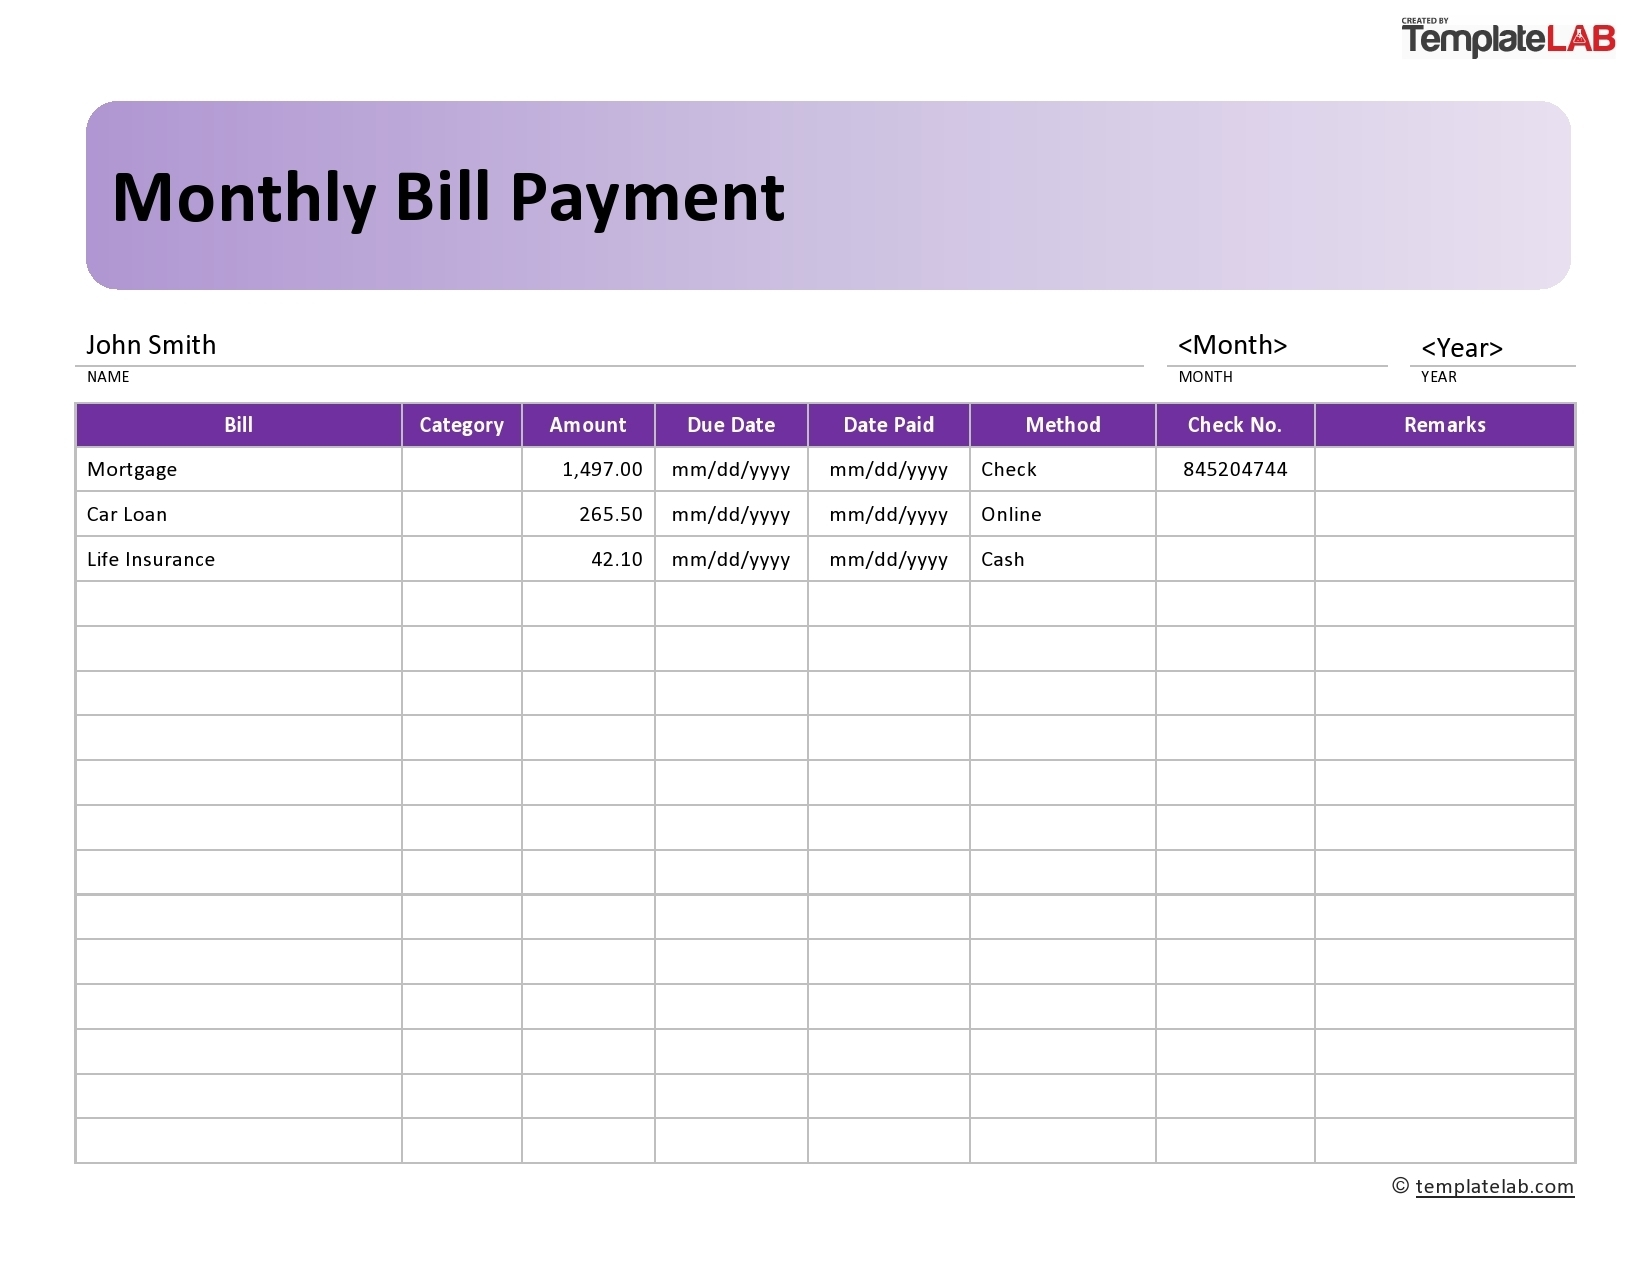 Take Payment Sheet Printable For A Month